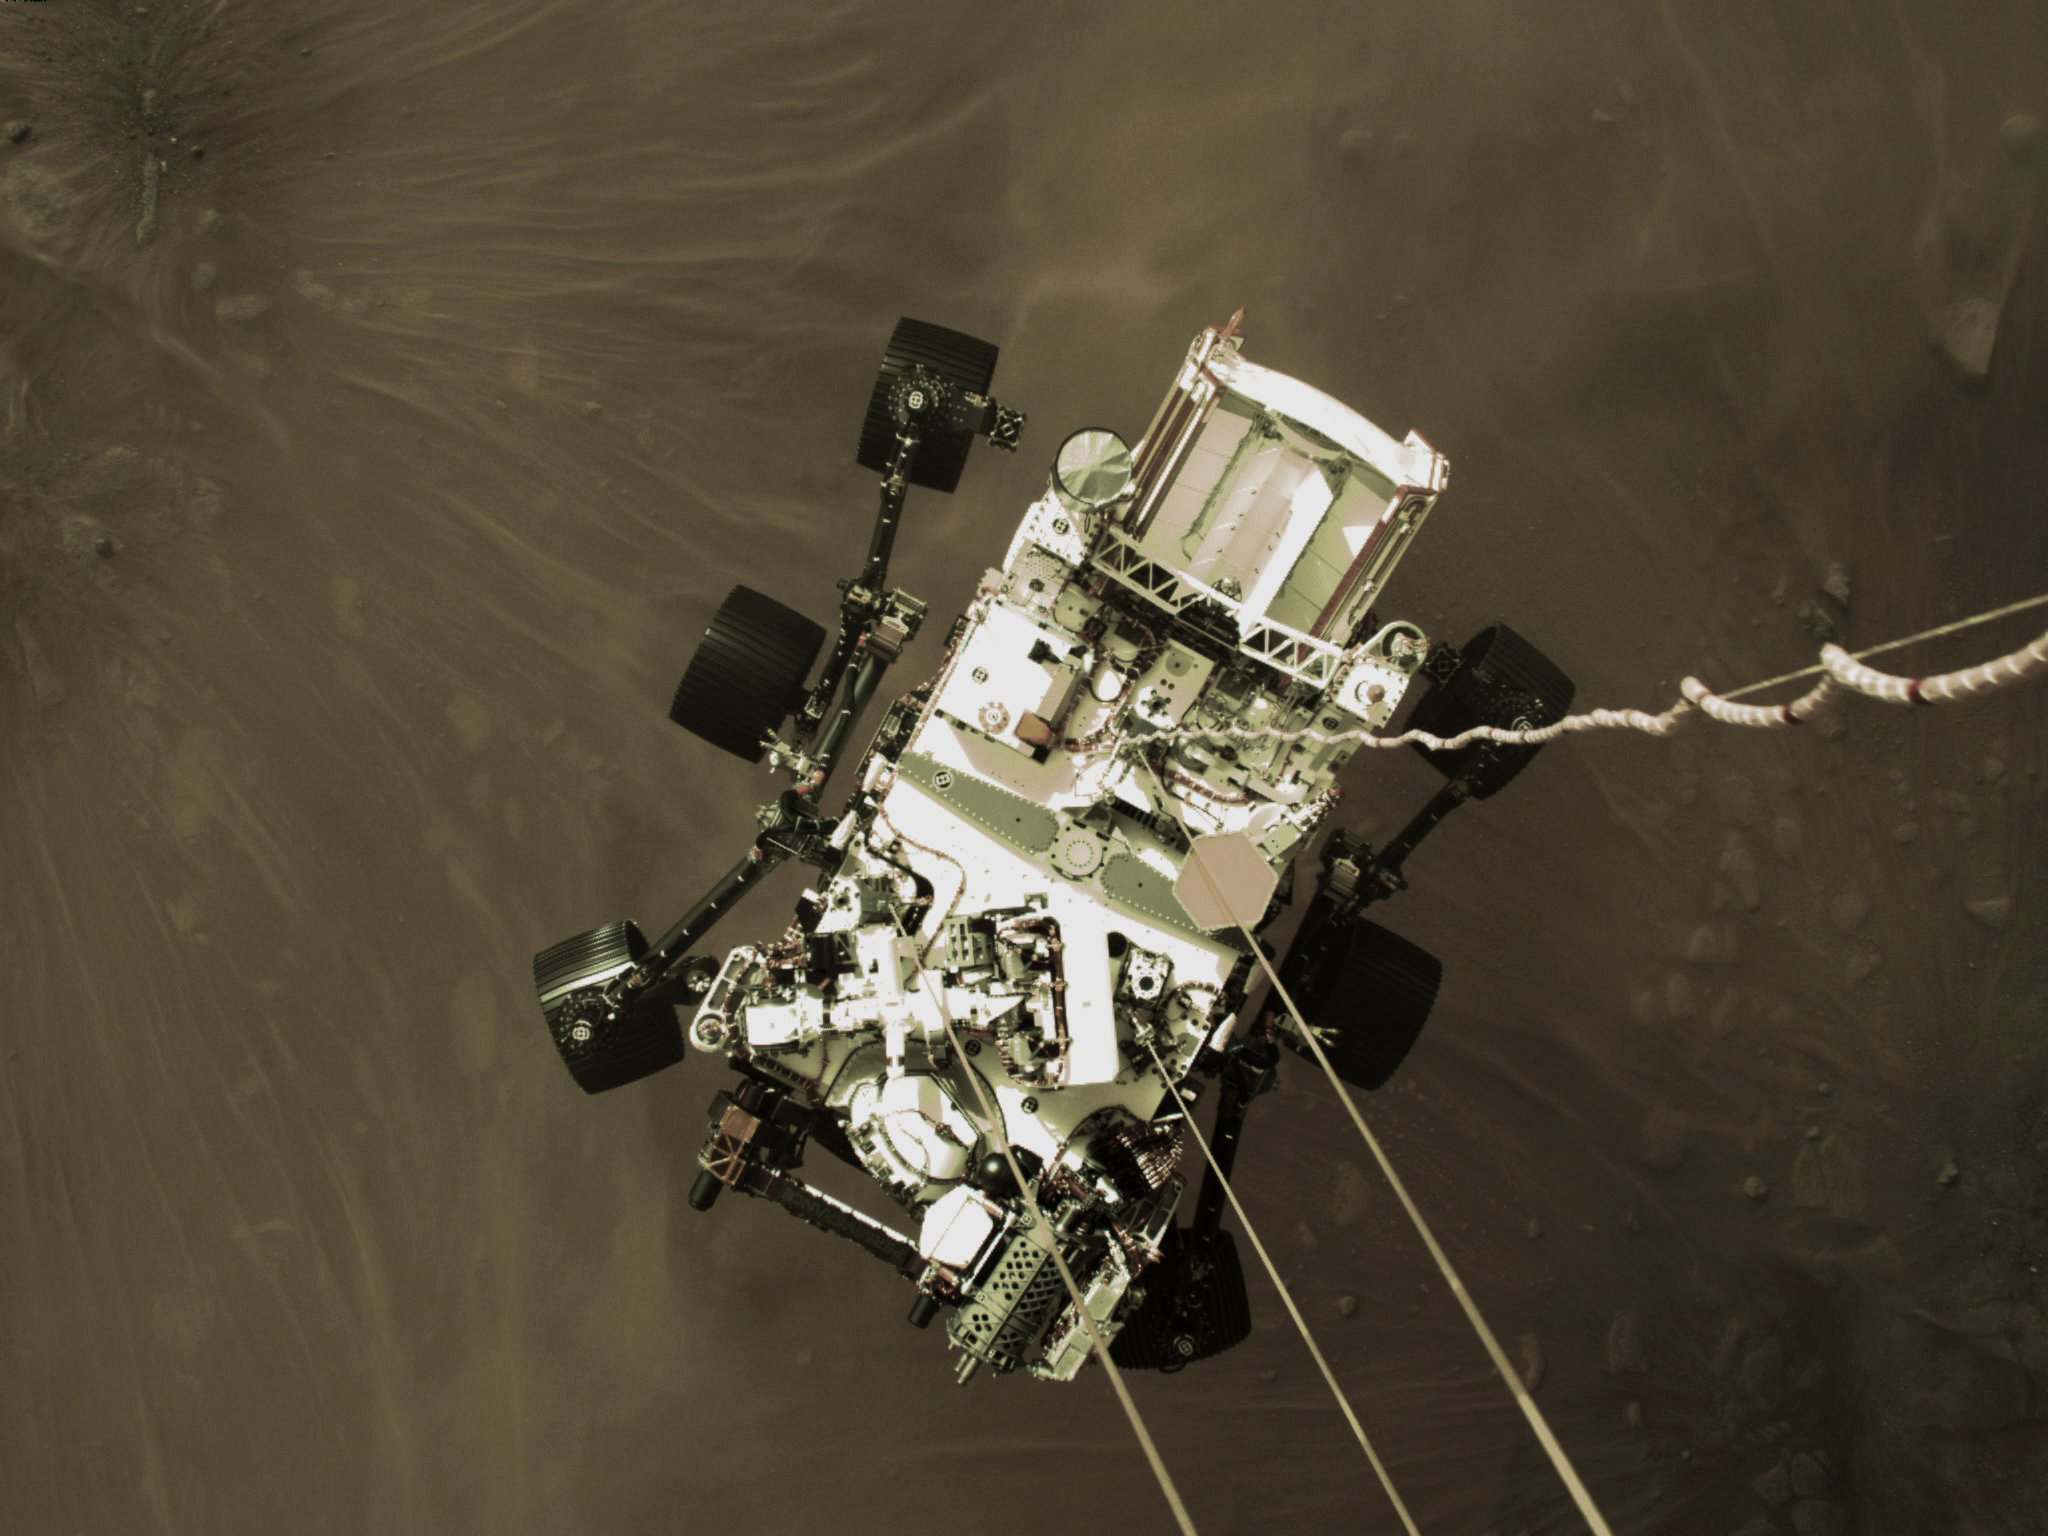 This Feb. 18, 2021 photo provided by NASA shows the Perseverance rover lowered towards the surface of Mars during its powered descent.